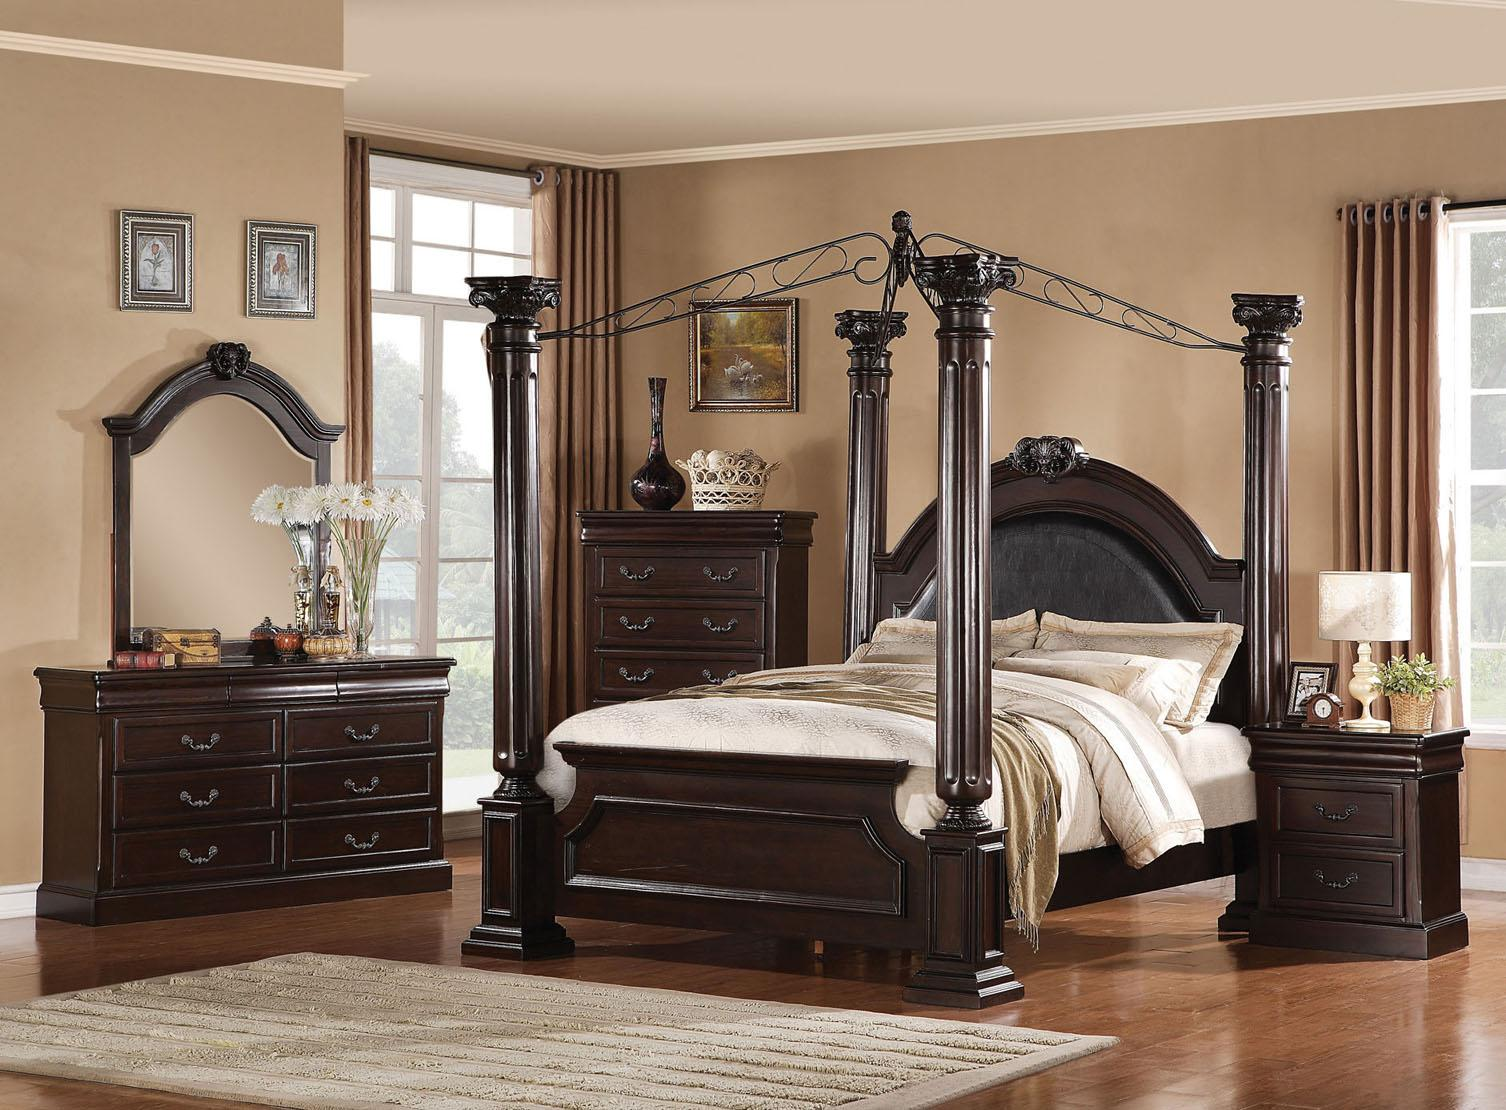 acme furniture bedroom sets. Acme Furniture Roman Empire California King Bedroom Group  Item Number RE